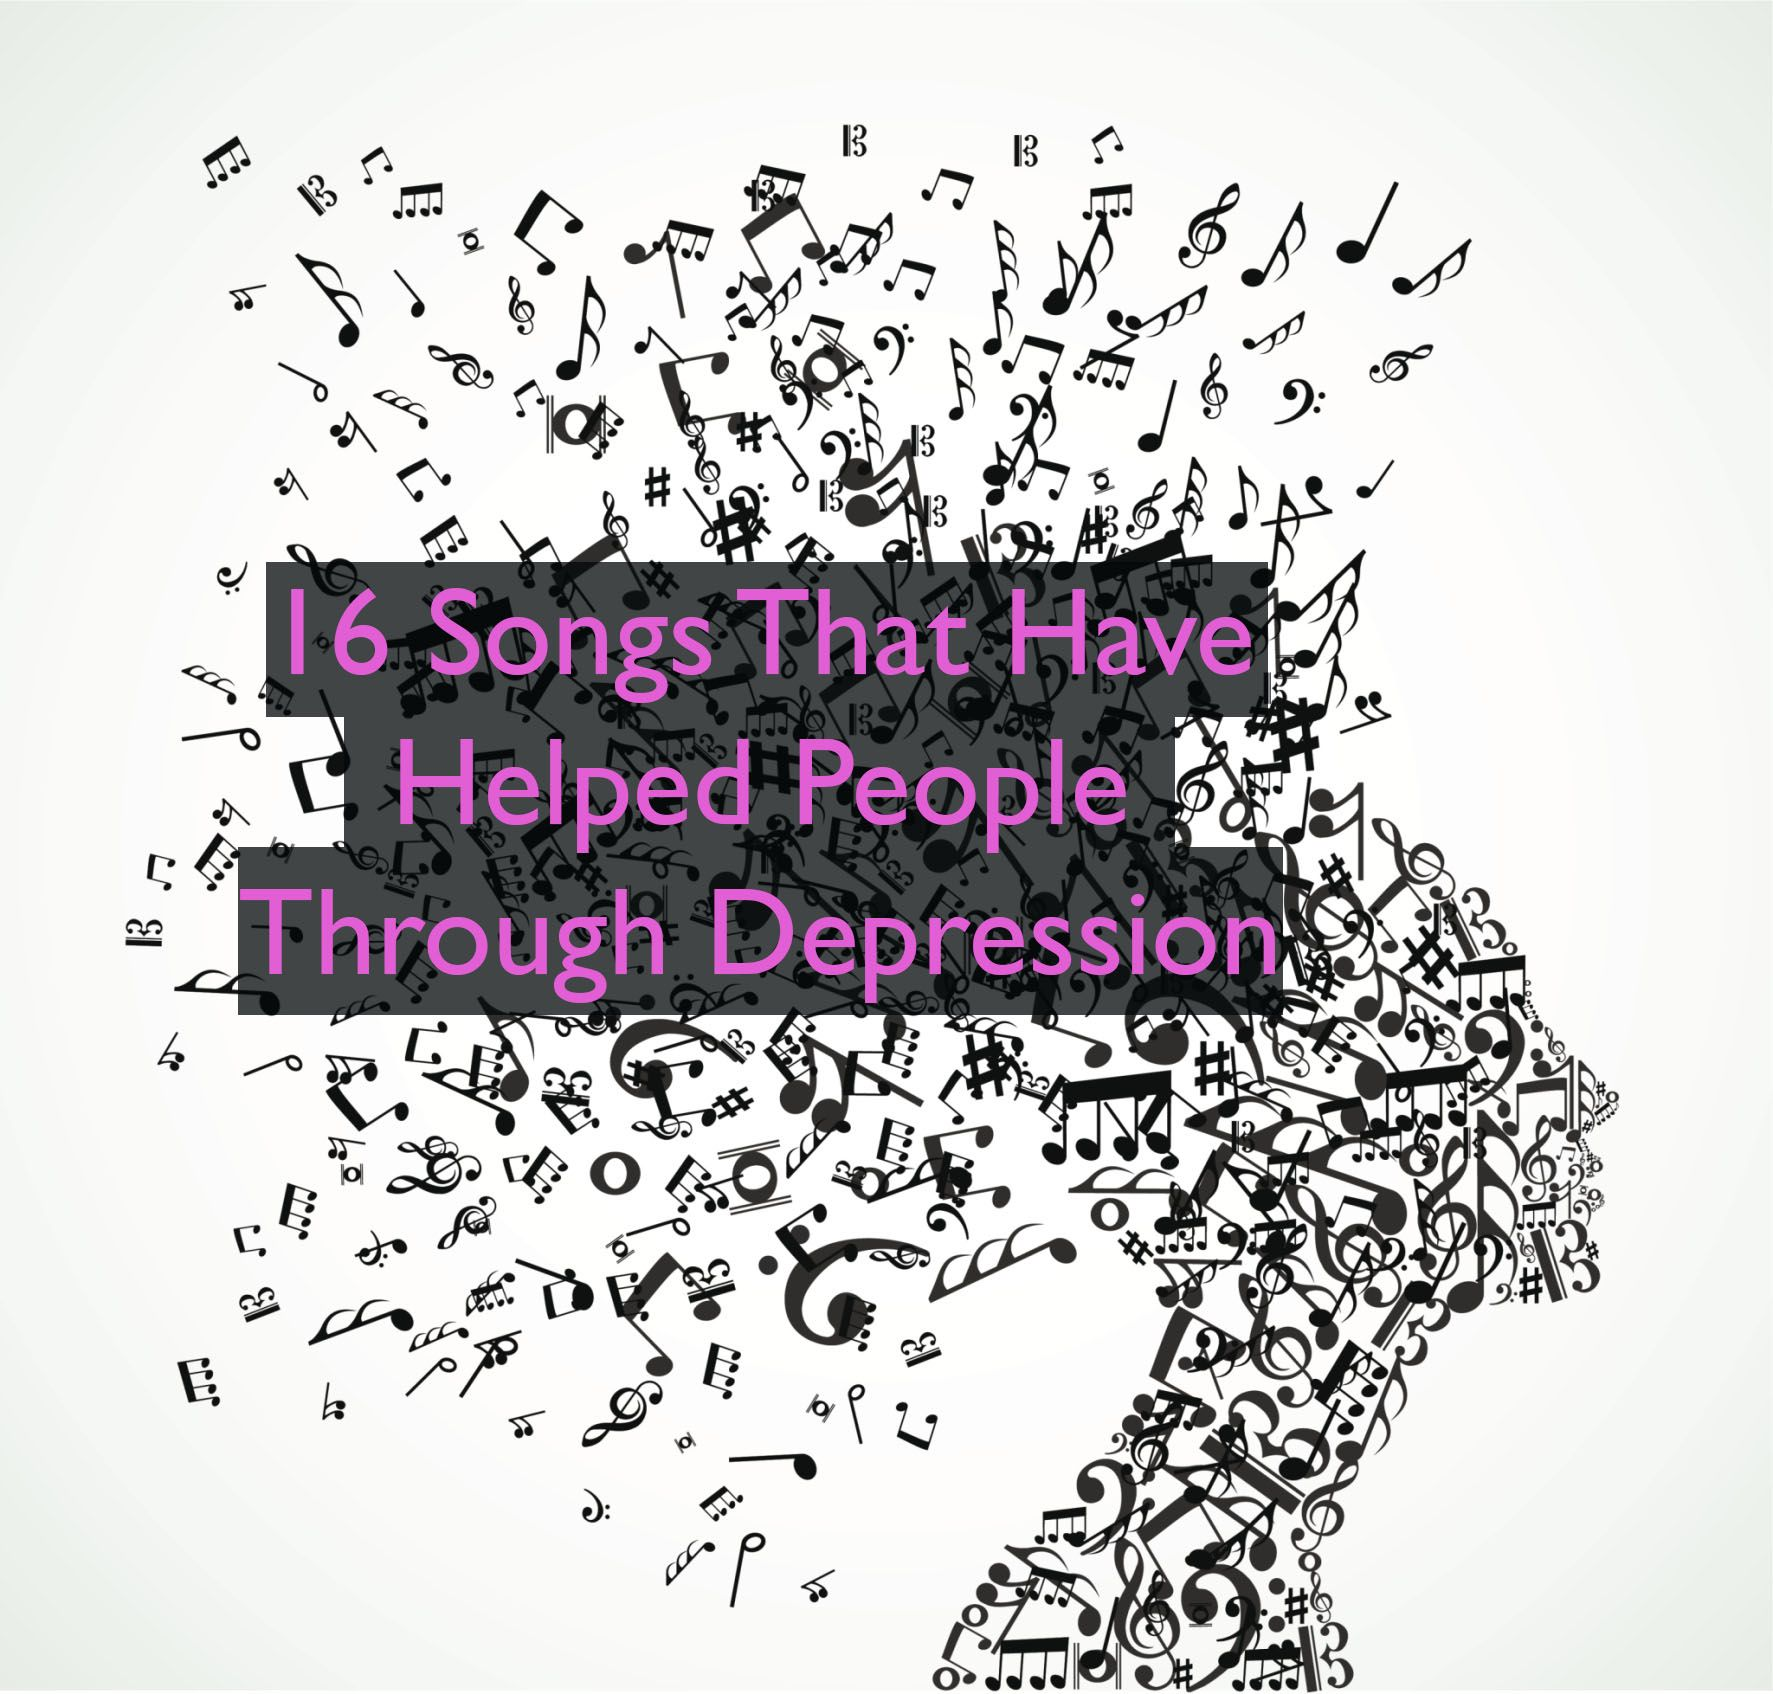 Motivational Quotes For Depression Sufferers: 16 Songs That Have Helped People Through Depression